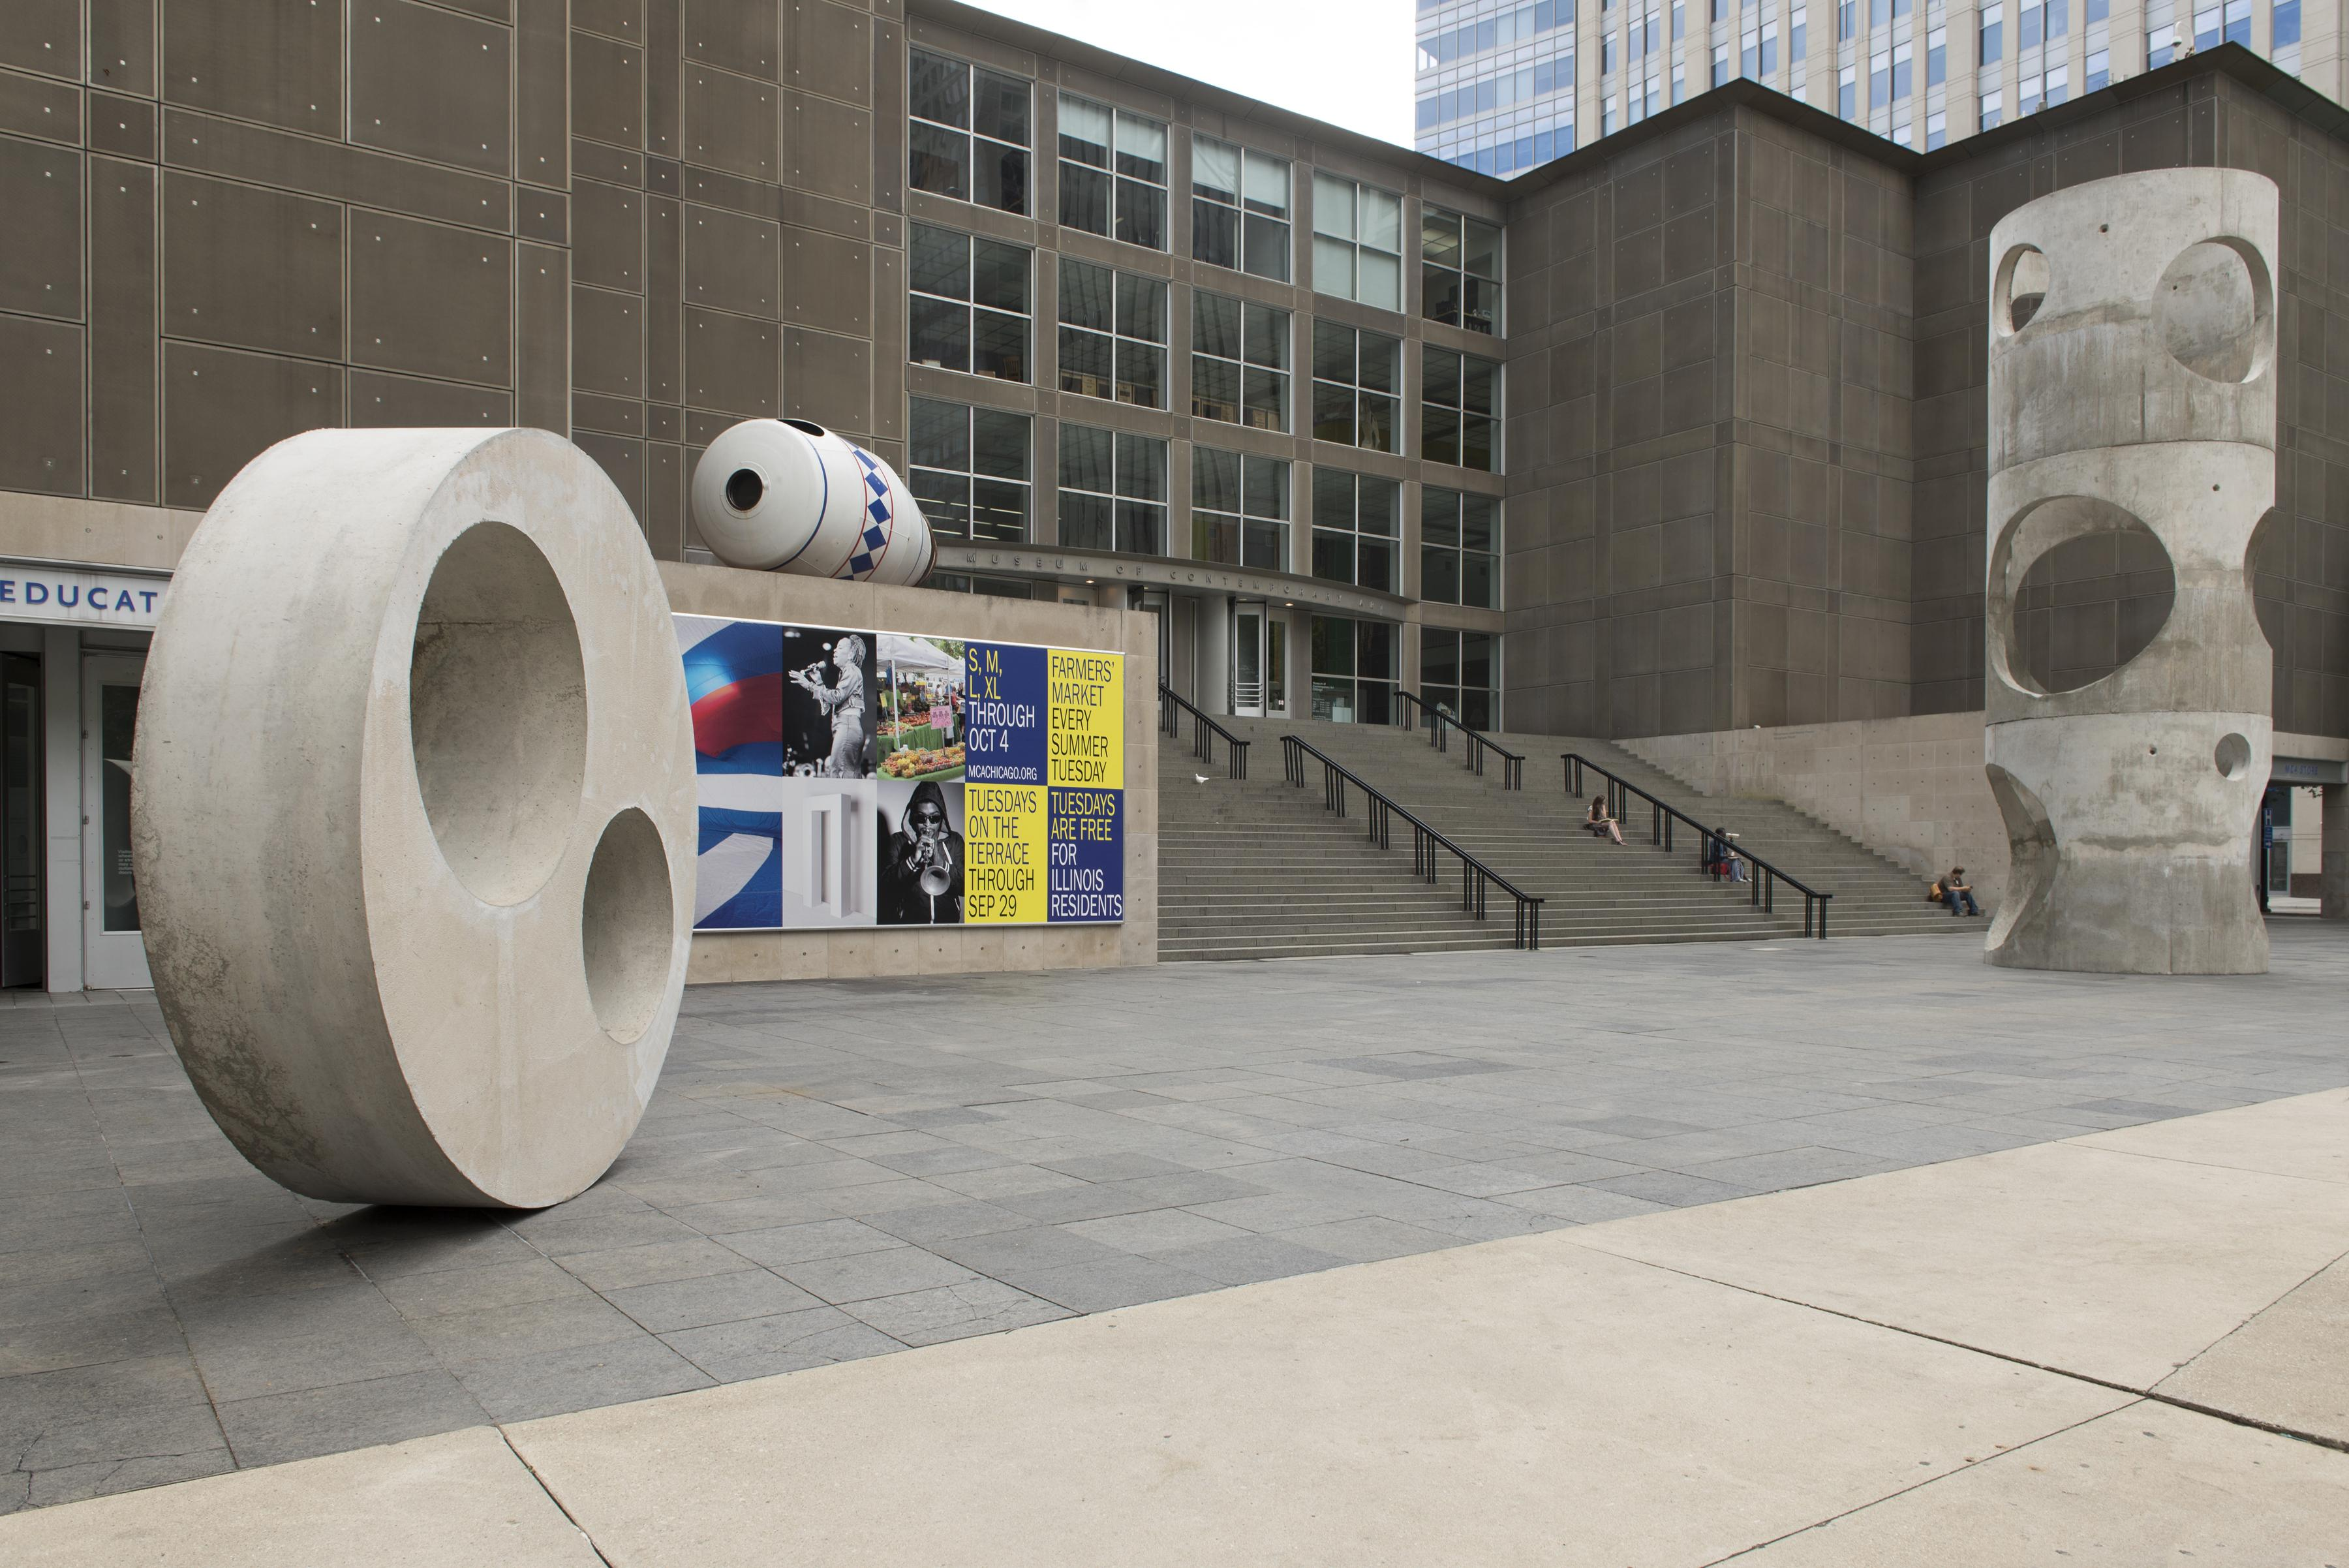 Two large concrete sculptures and a large white container-shaped sculpture on the MCA Plaza